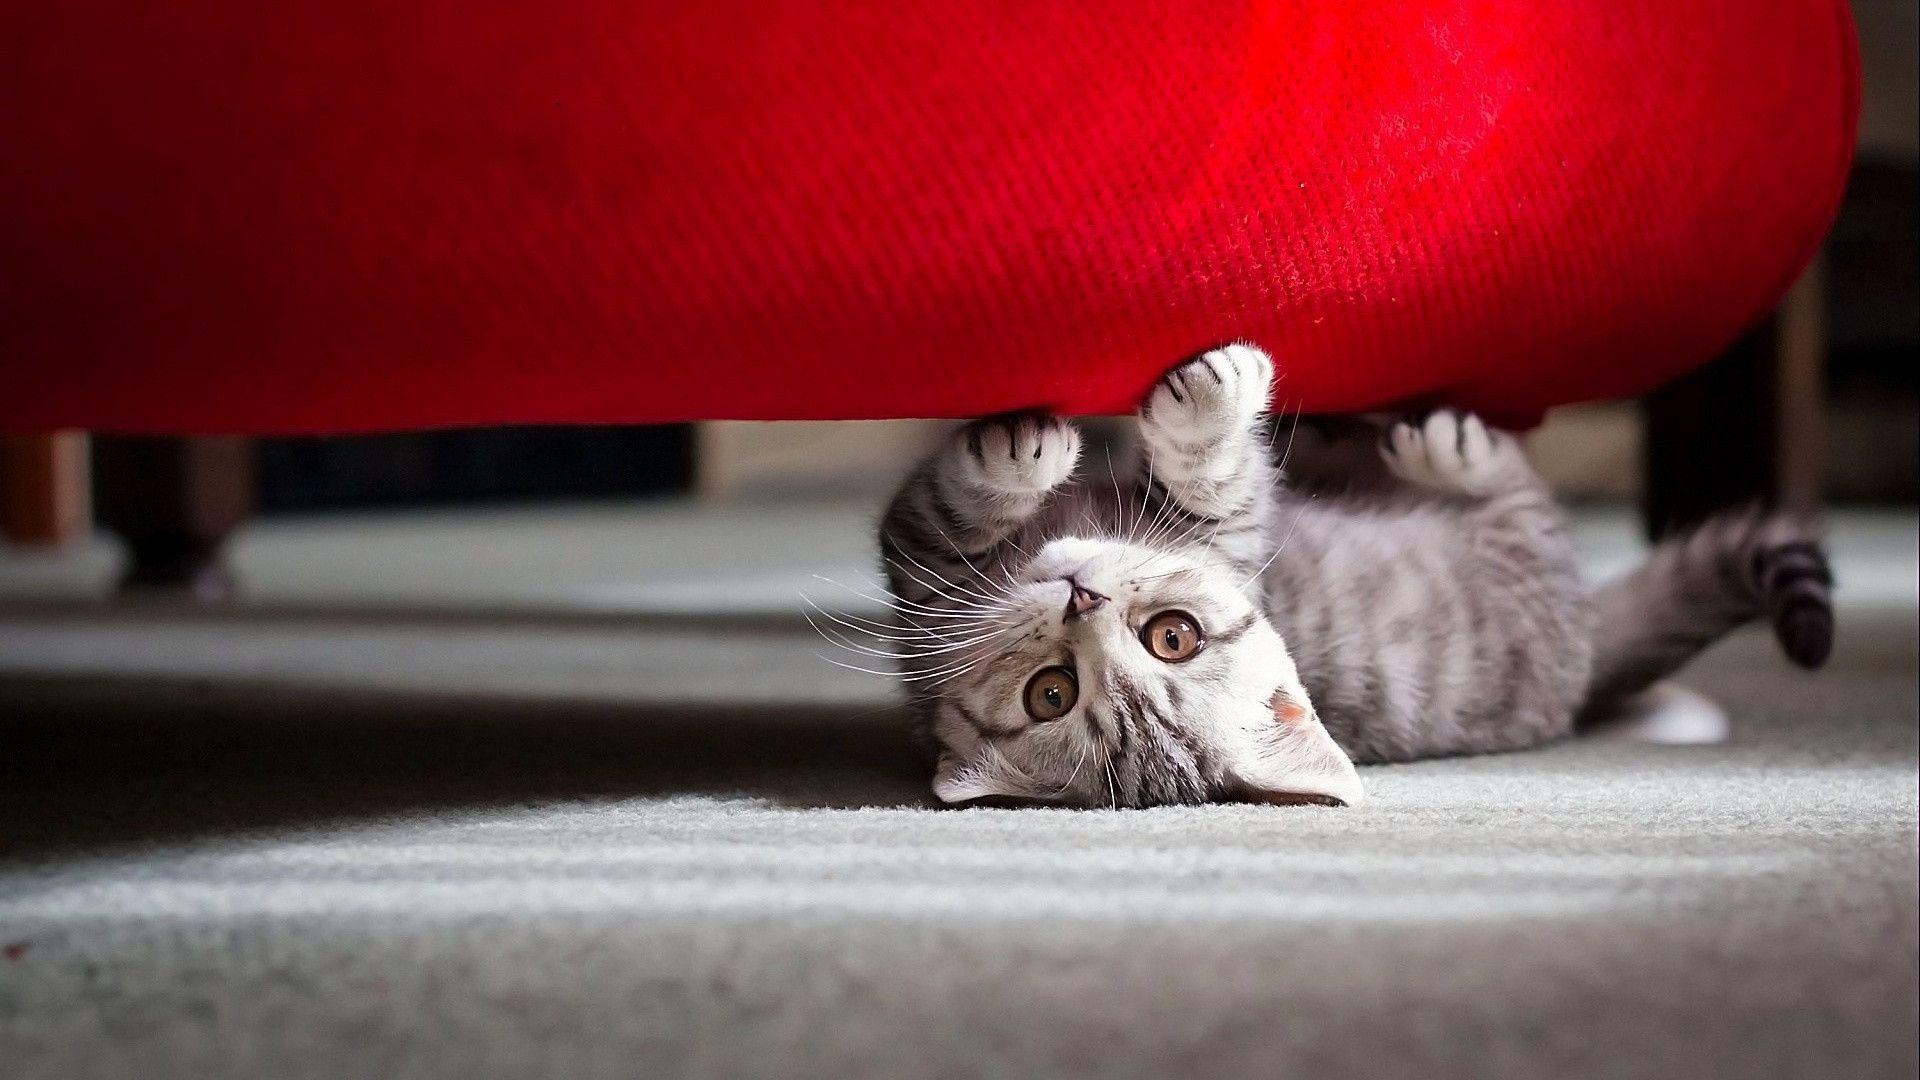 hd cat images free download 6